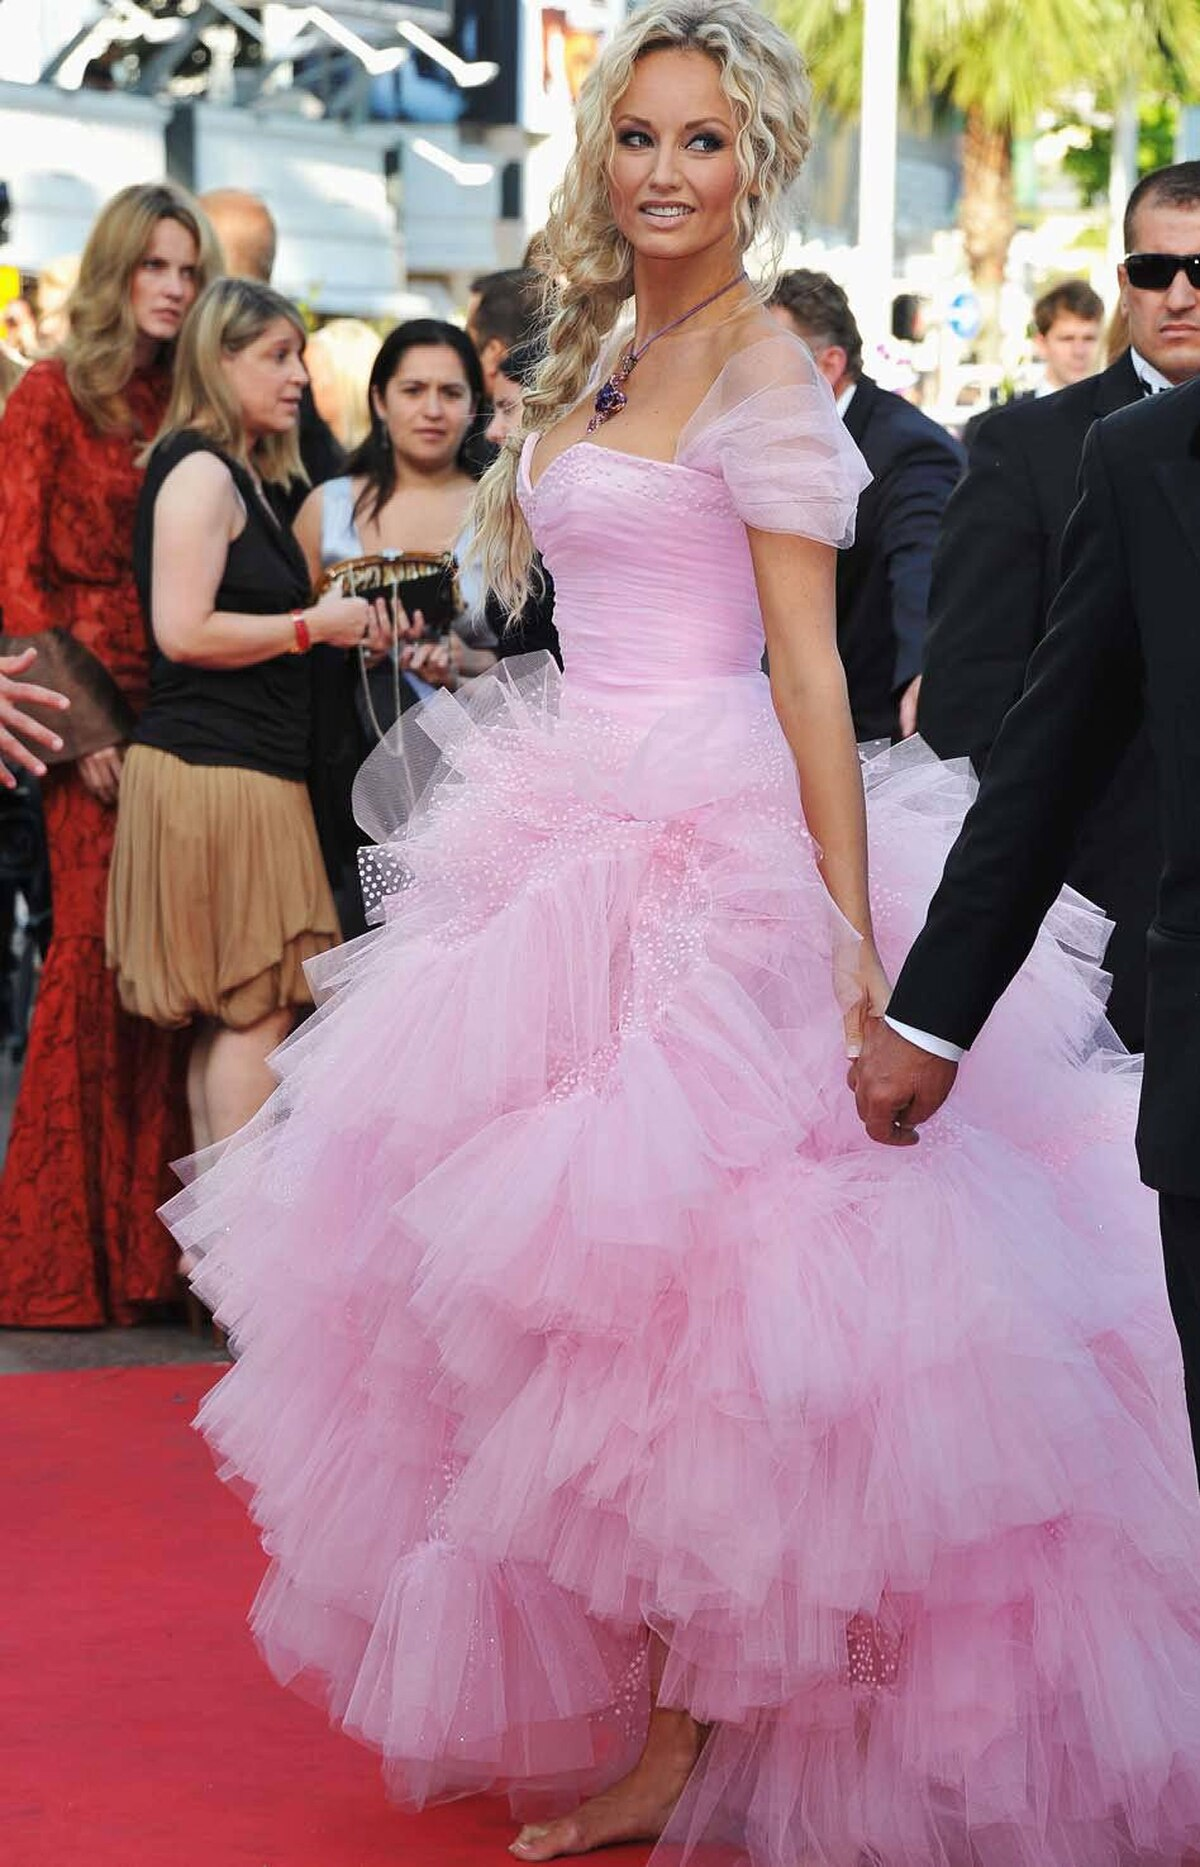 """Bare-footed model Adriana Karembeu attends """"The Beaver"""" premiere at the Cannes Film Festival on Tuesday."""